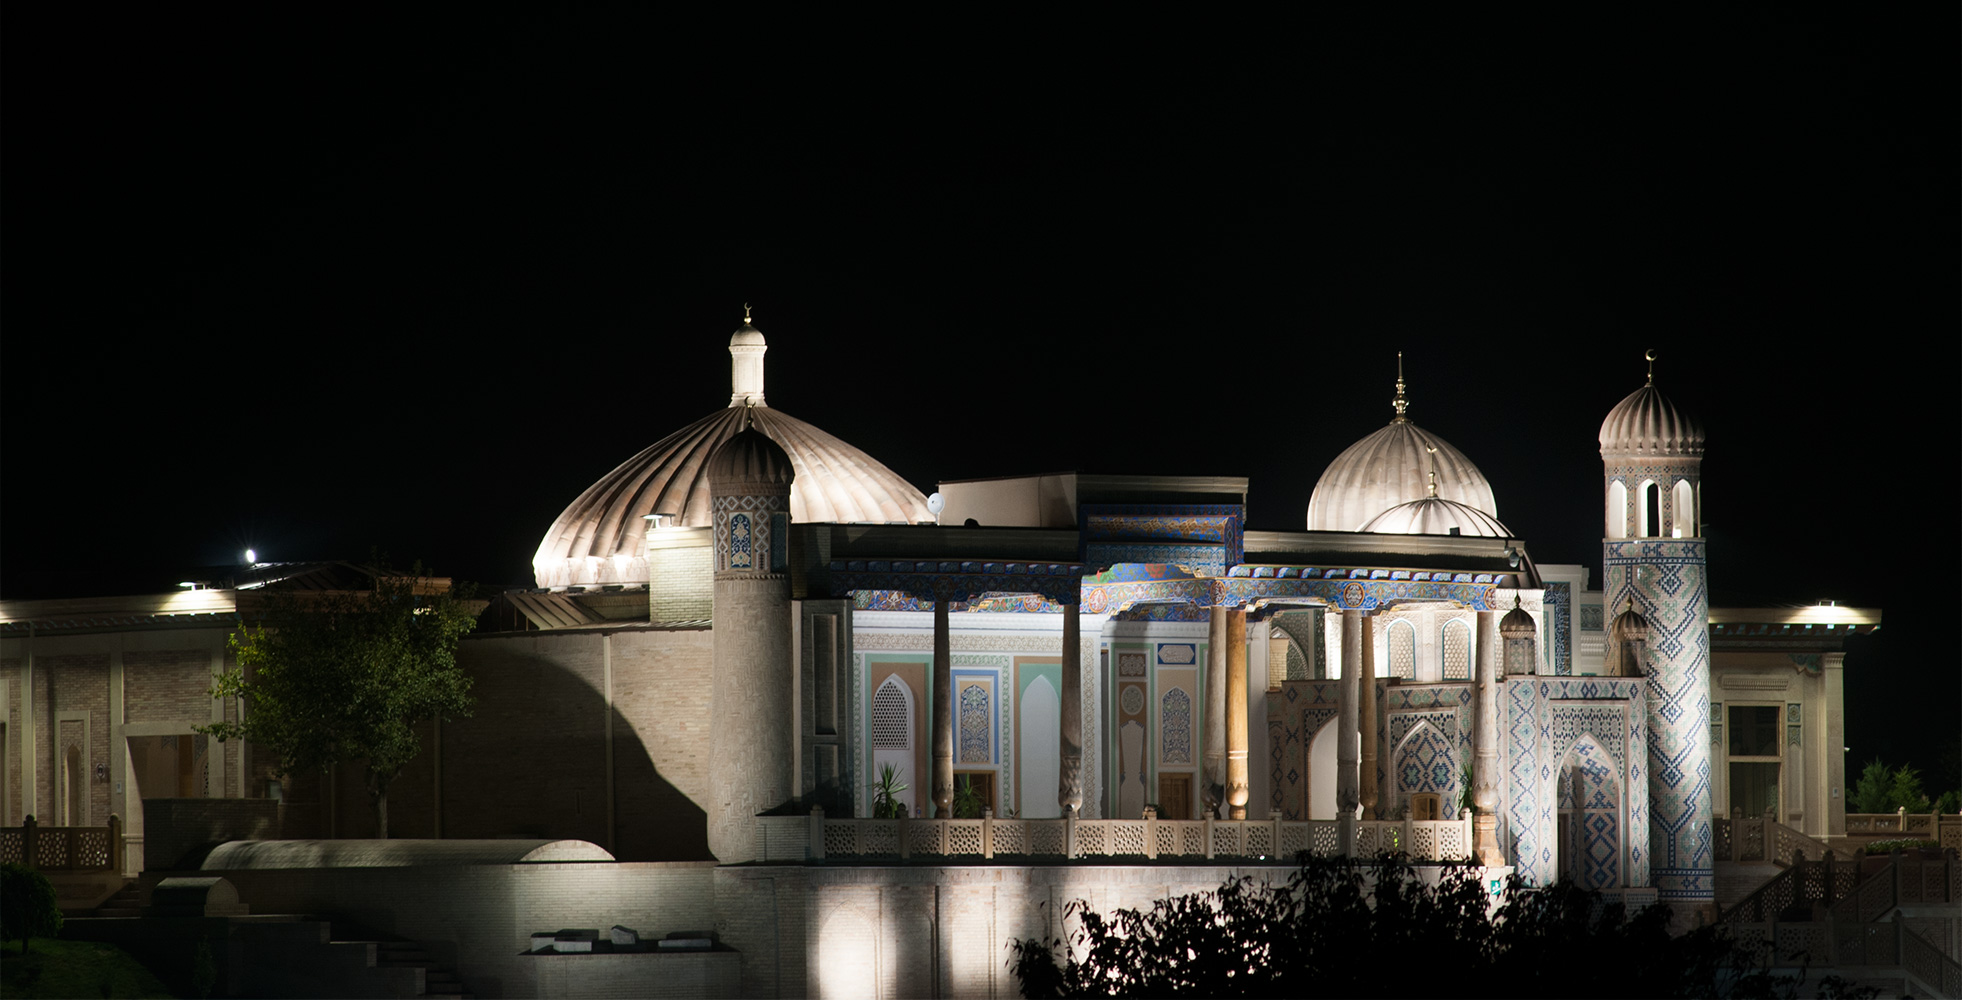 Floodlit at night. A telephoto from Bibi Khanum's mausolueum over a kilometre away. This current structure dates from the mid C19 and has been extensively renovated, especially after the burial of notorious Uzbek president Islam Karimov in the groundsNikon D300, 180mm